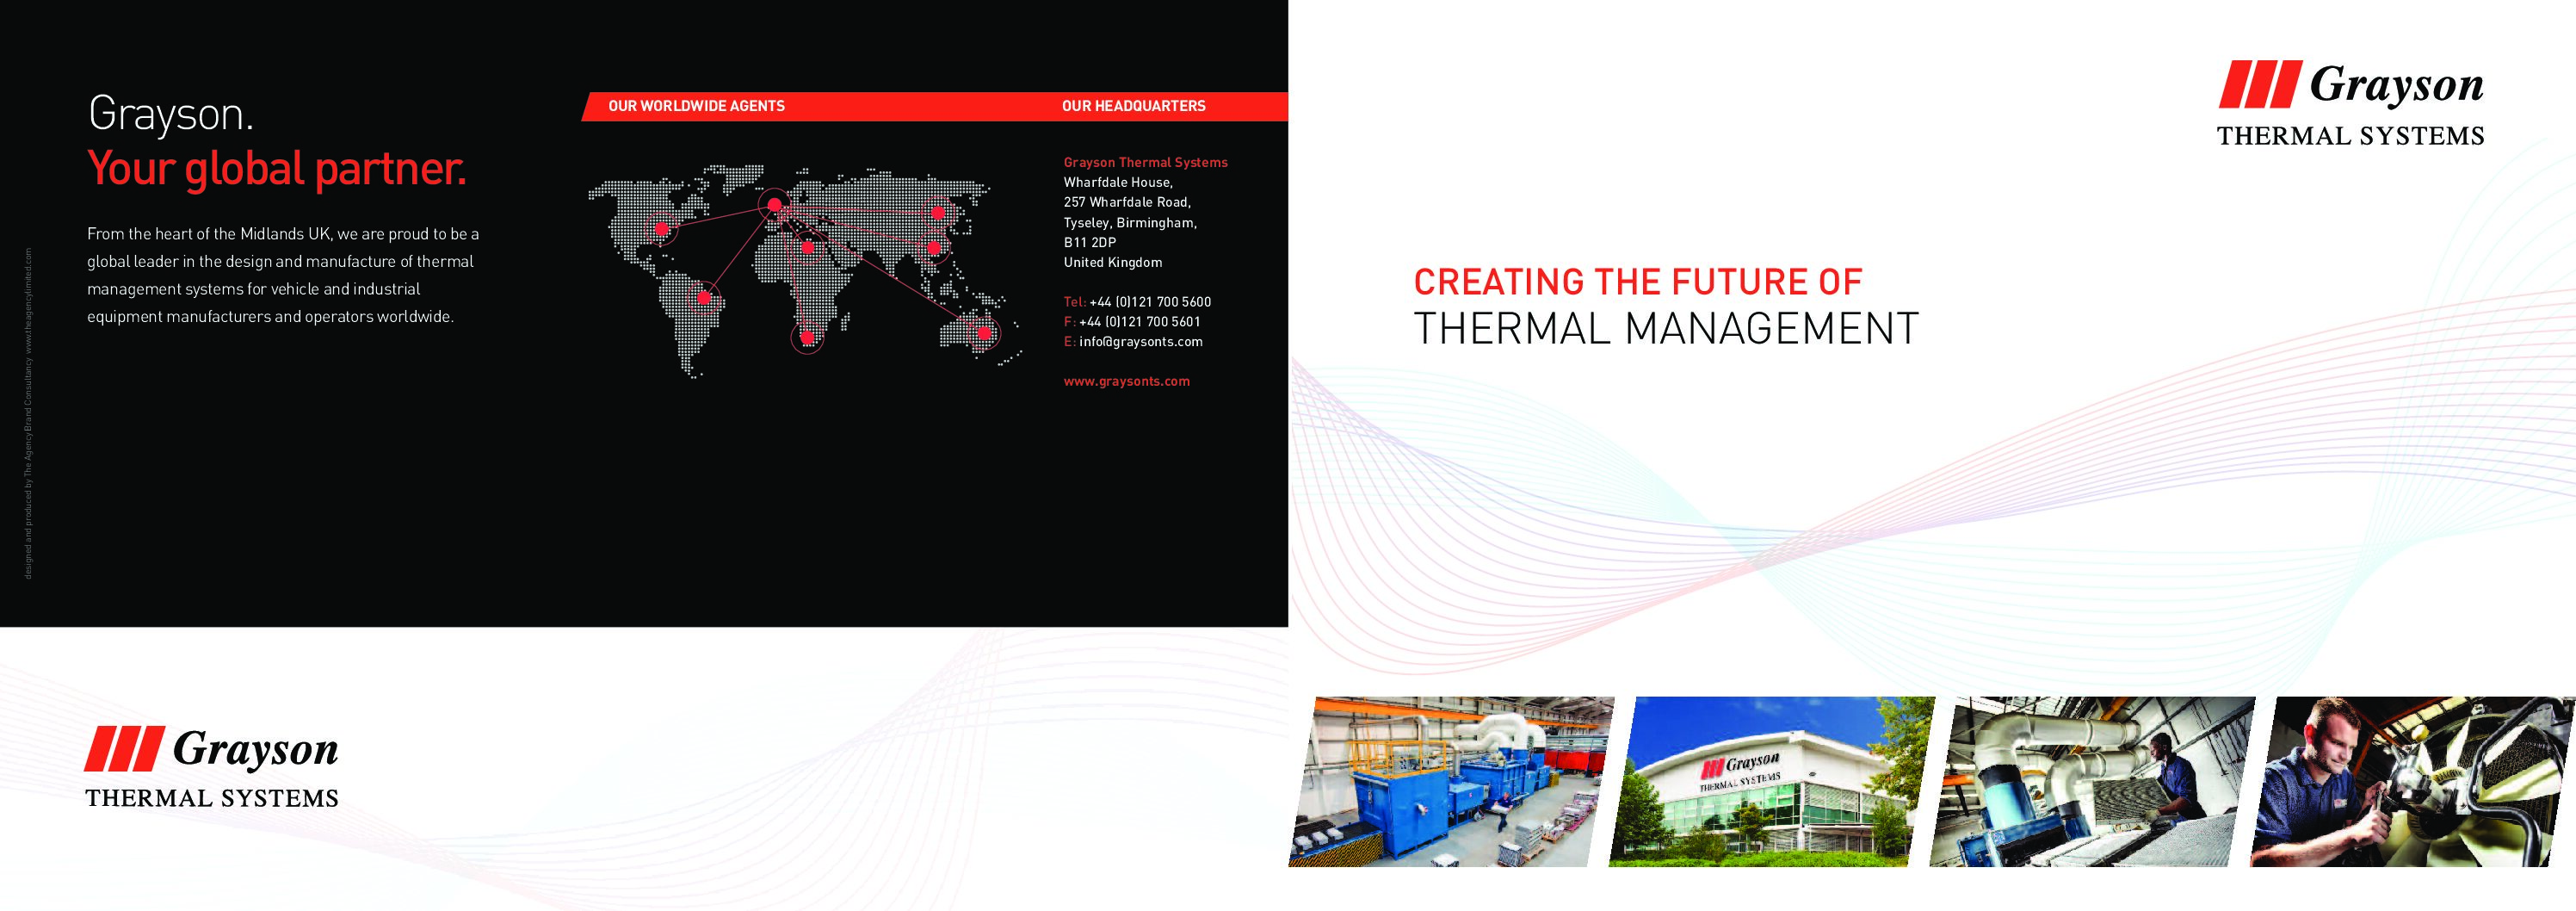 Grayson Thermal Systems – Corporate Brochure